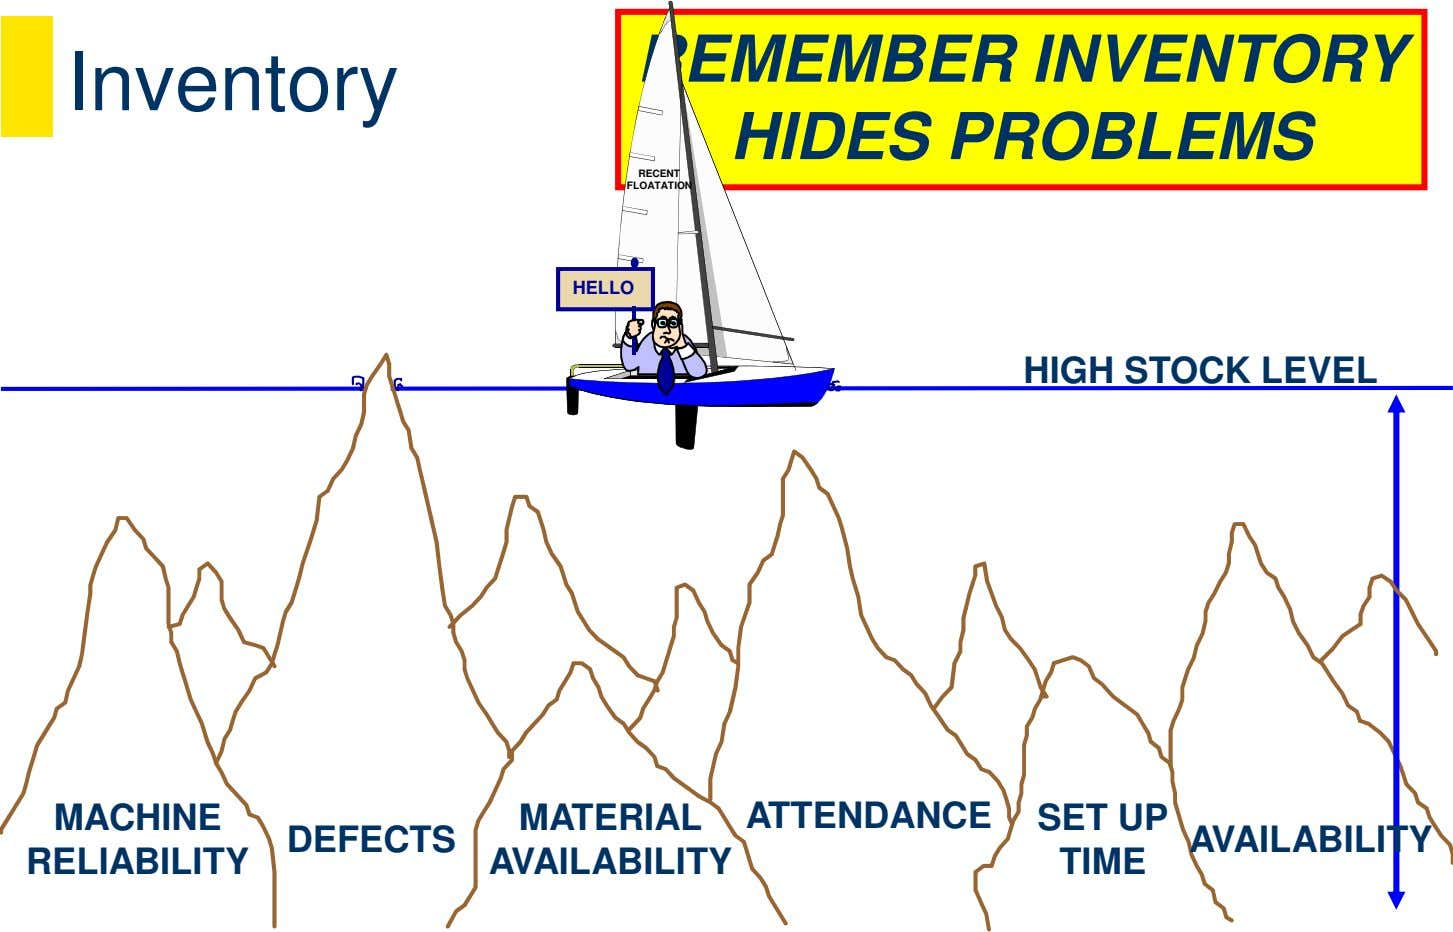 Inventory REMEMBER INVENTORY HIDES PROBLEMS RECENT FLOATATION HELLO HIGH STOCK LEVEL MACHINE MATERIAL ATTENDANCE